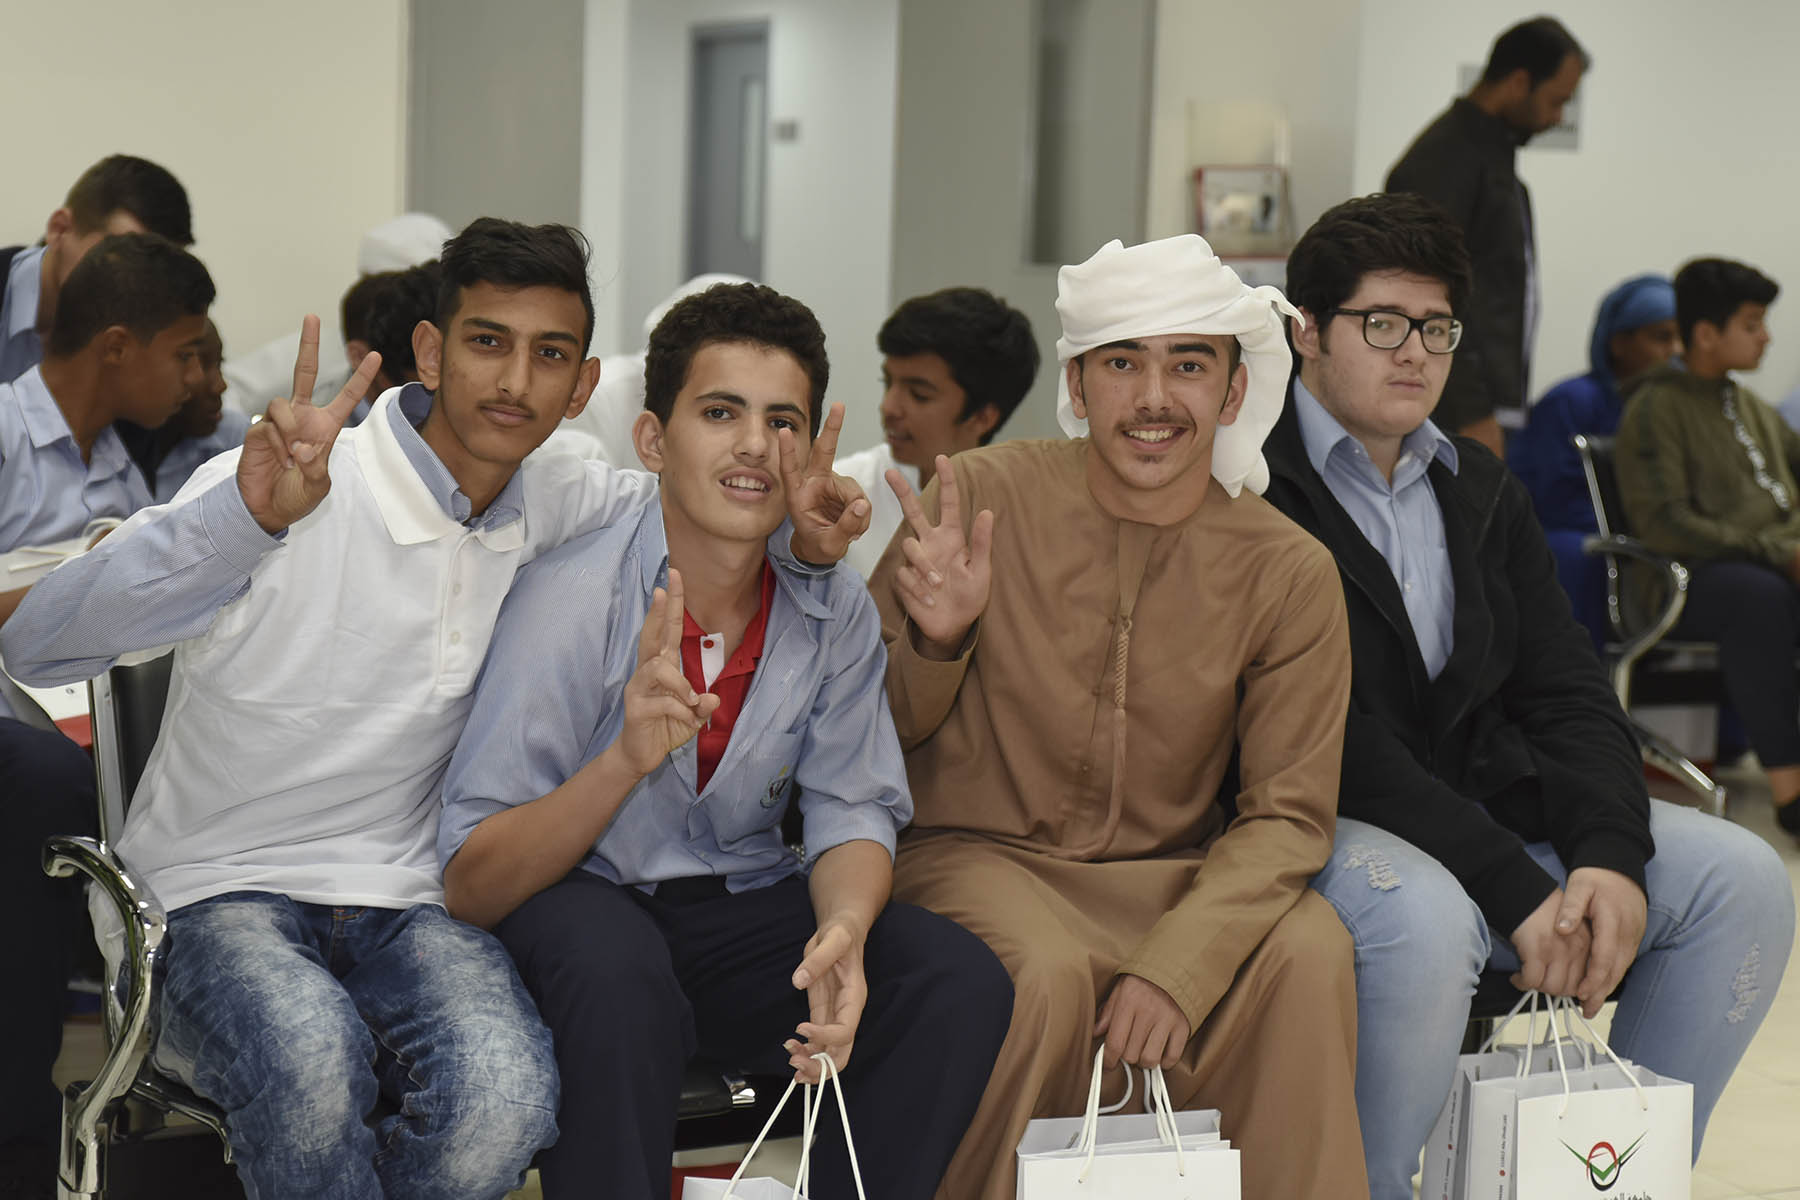 Baraem Al Ain Private School & Al Tafawok Al Elmi Private School - Al Ain Campus